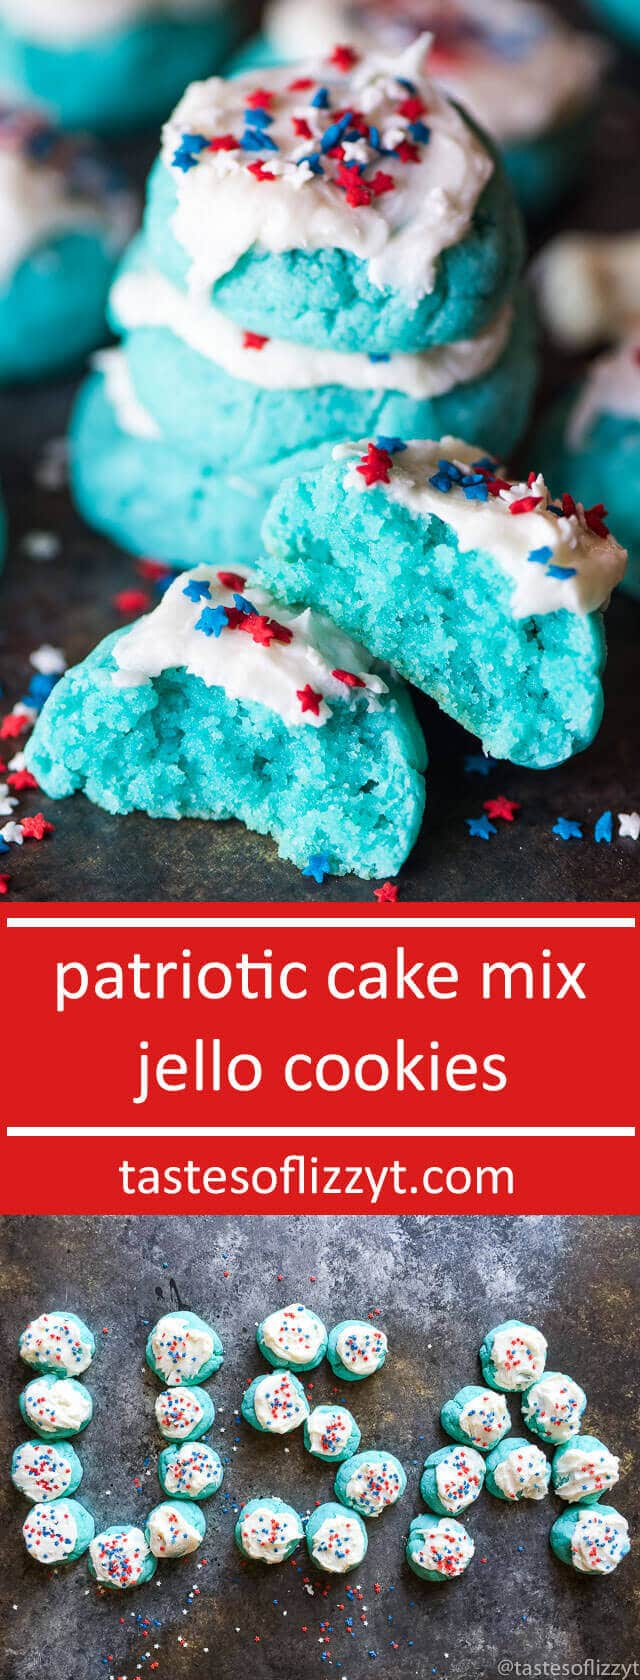 Patriotic Cake Mix Jello Cookies. A wonderful combination of a boxed cake mix and Jell-O. These are so simple and fun to decorate for the 4th of July! easy patriotic dessert recipe